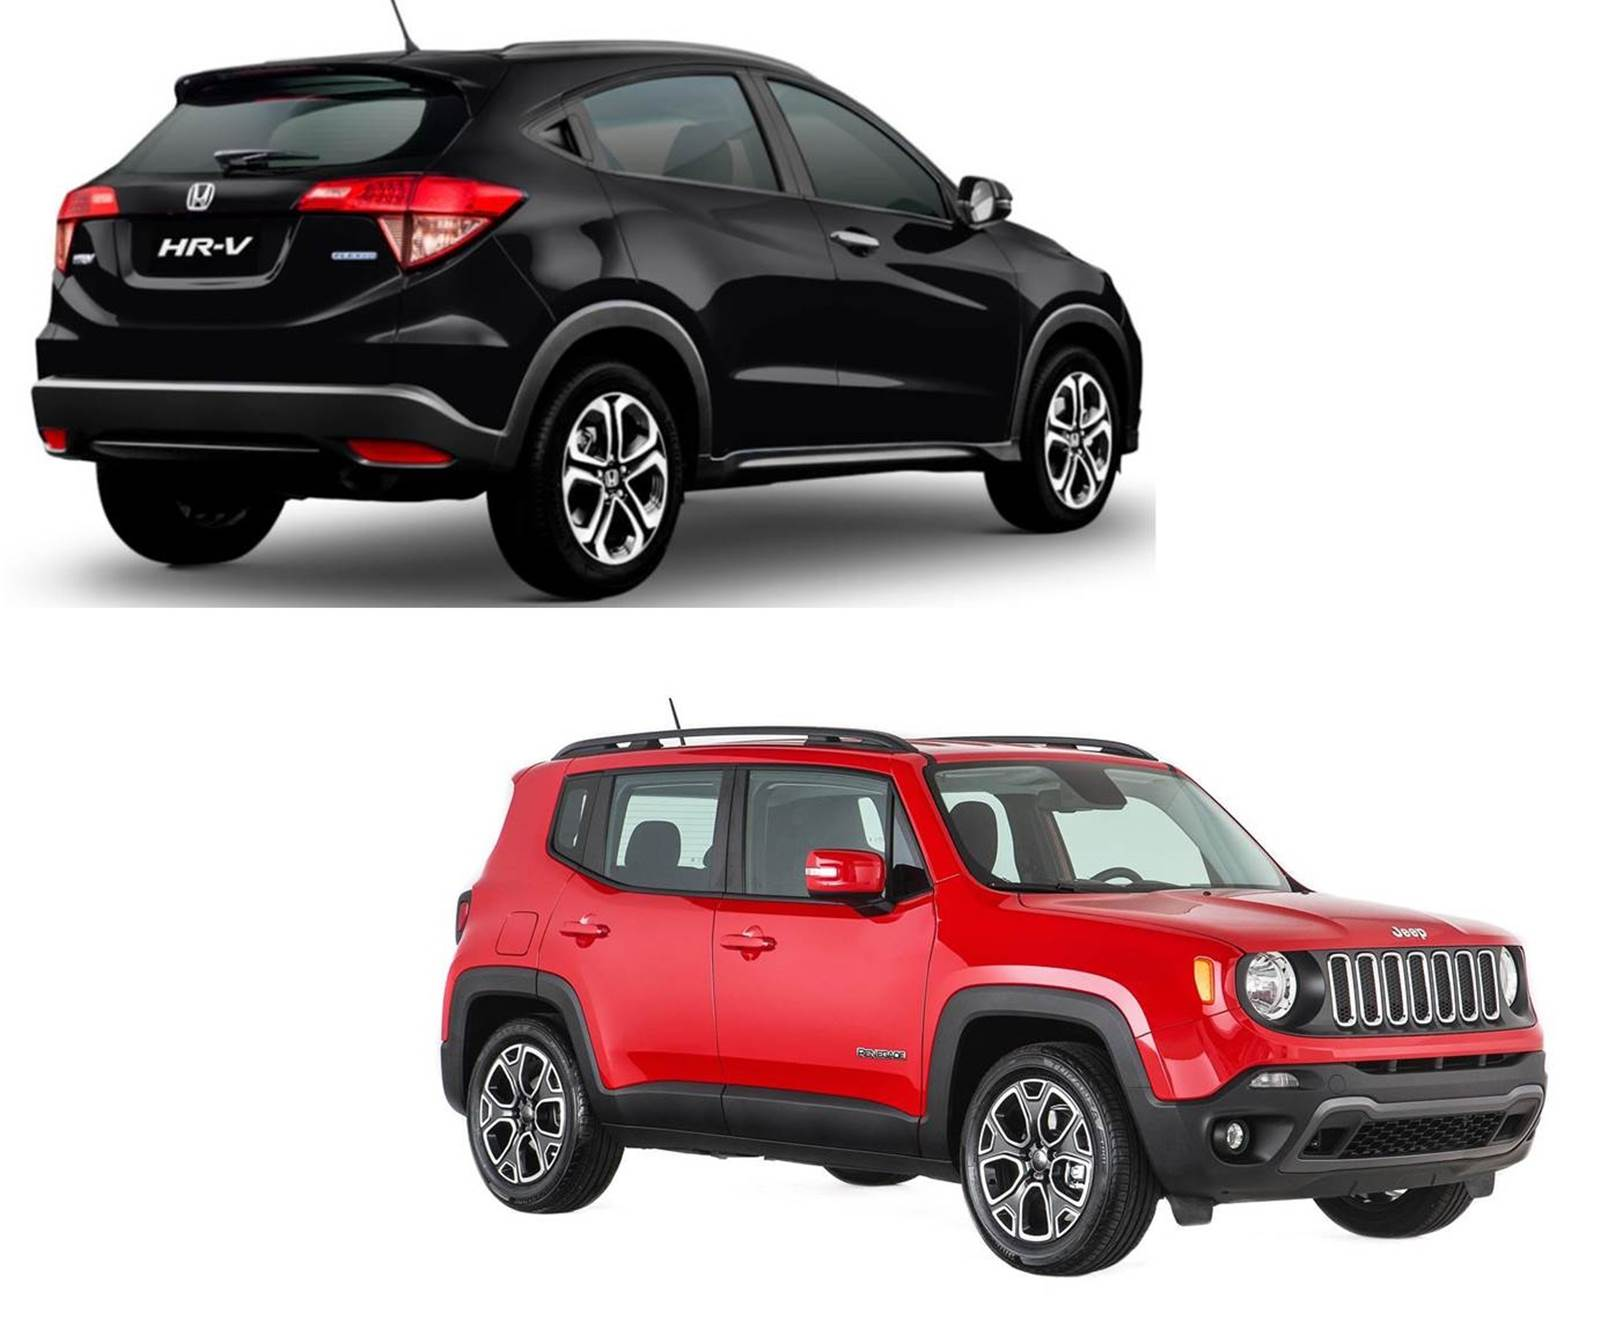 Jeep Renegade x Honda HR-V